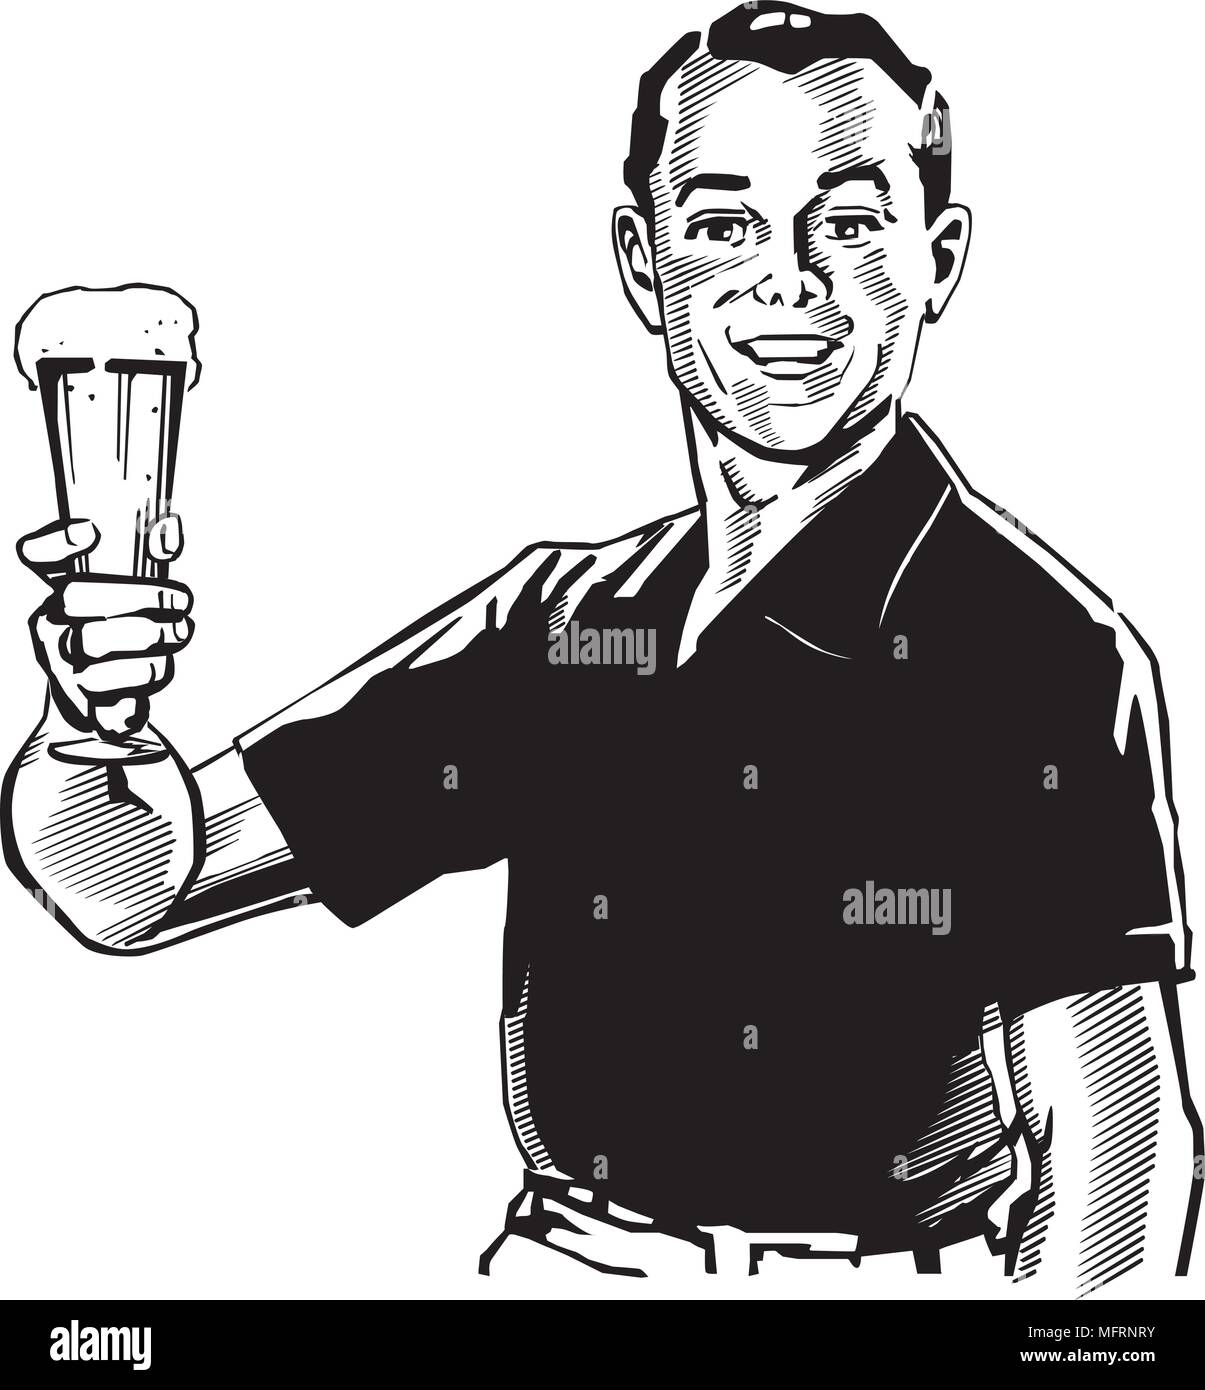 Man With Beer - Retro Clipart Illustration - Stock Image